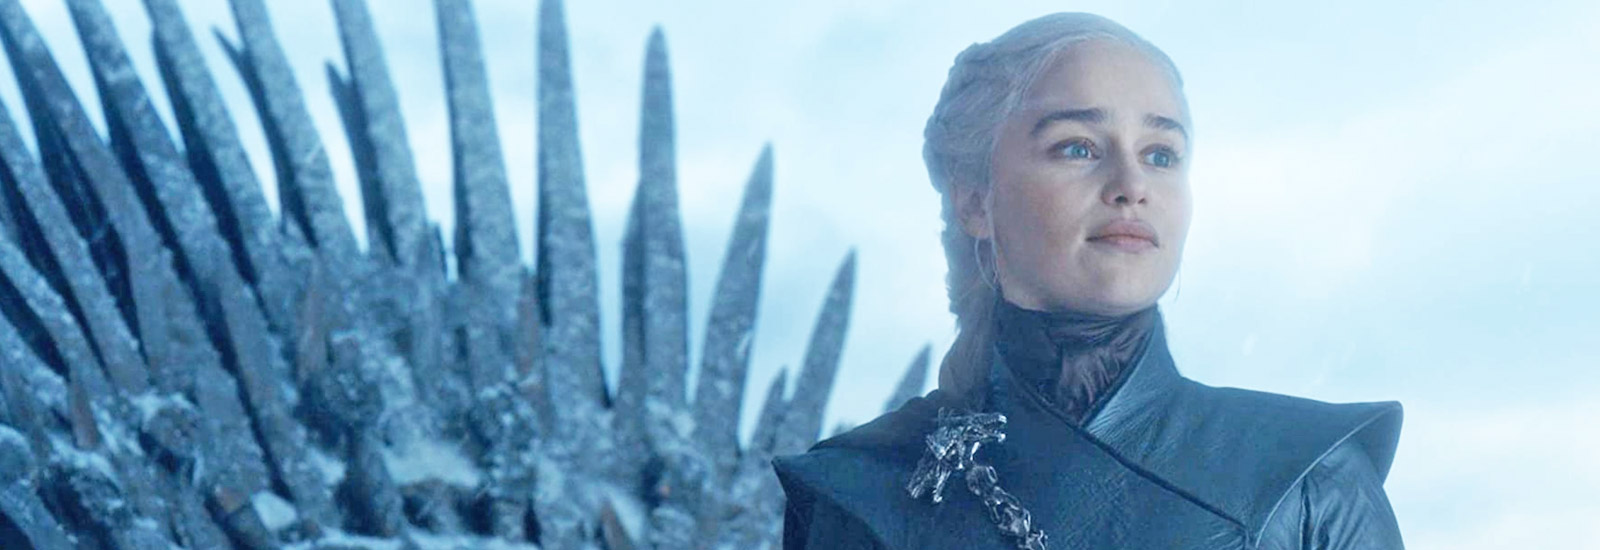 HBO Is Celebrating 10 Years Of 'Game Of Thrones' With A Full Month of Revelry